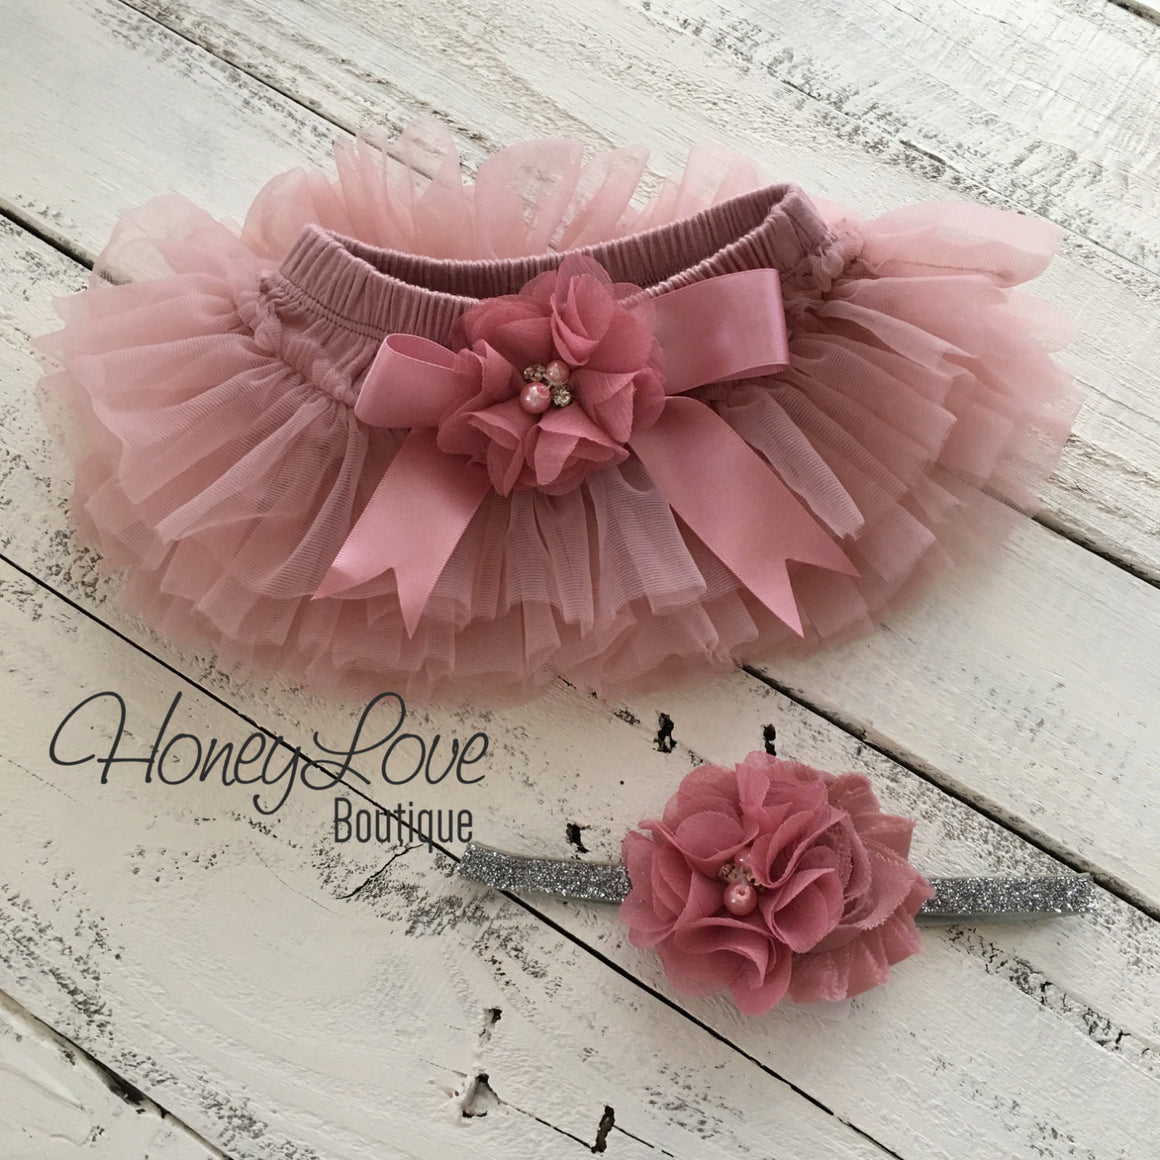 Vintage Pink tutu skirt bloomers and silver glitter headband - embellished bloomers